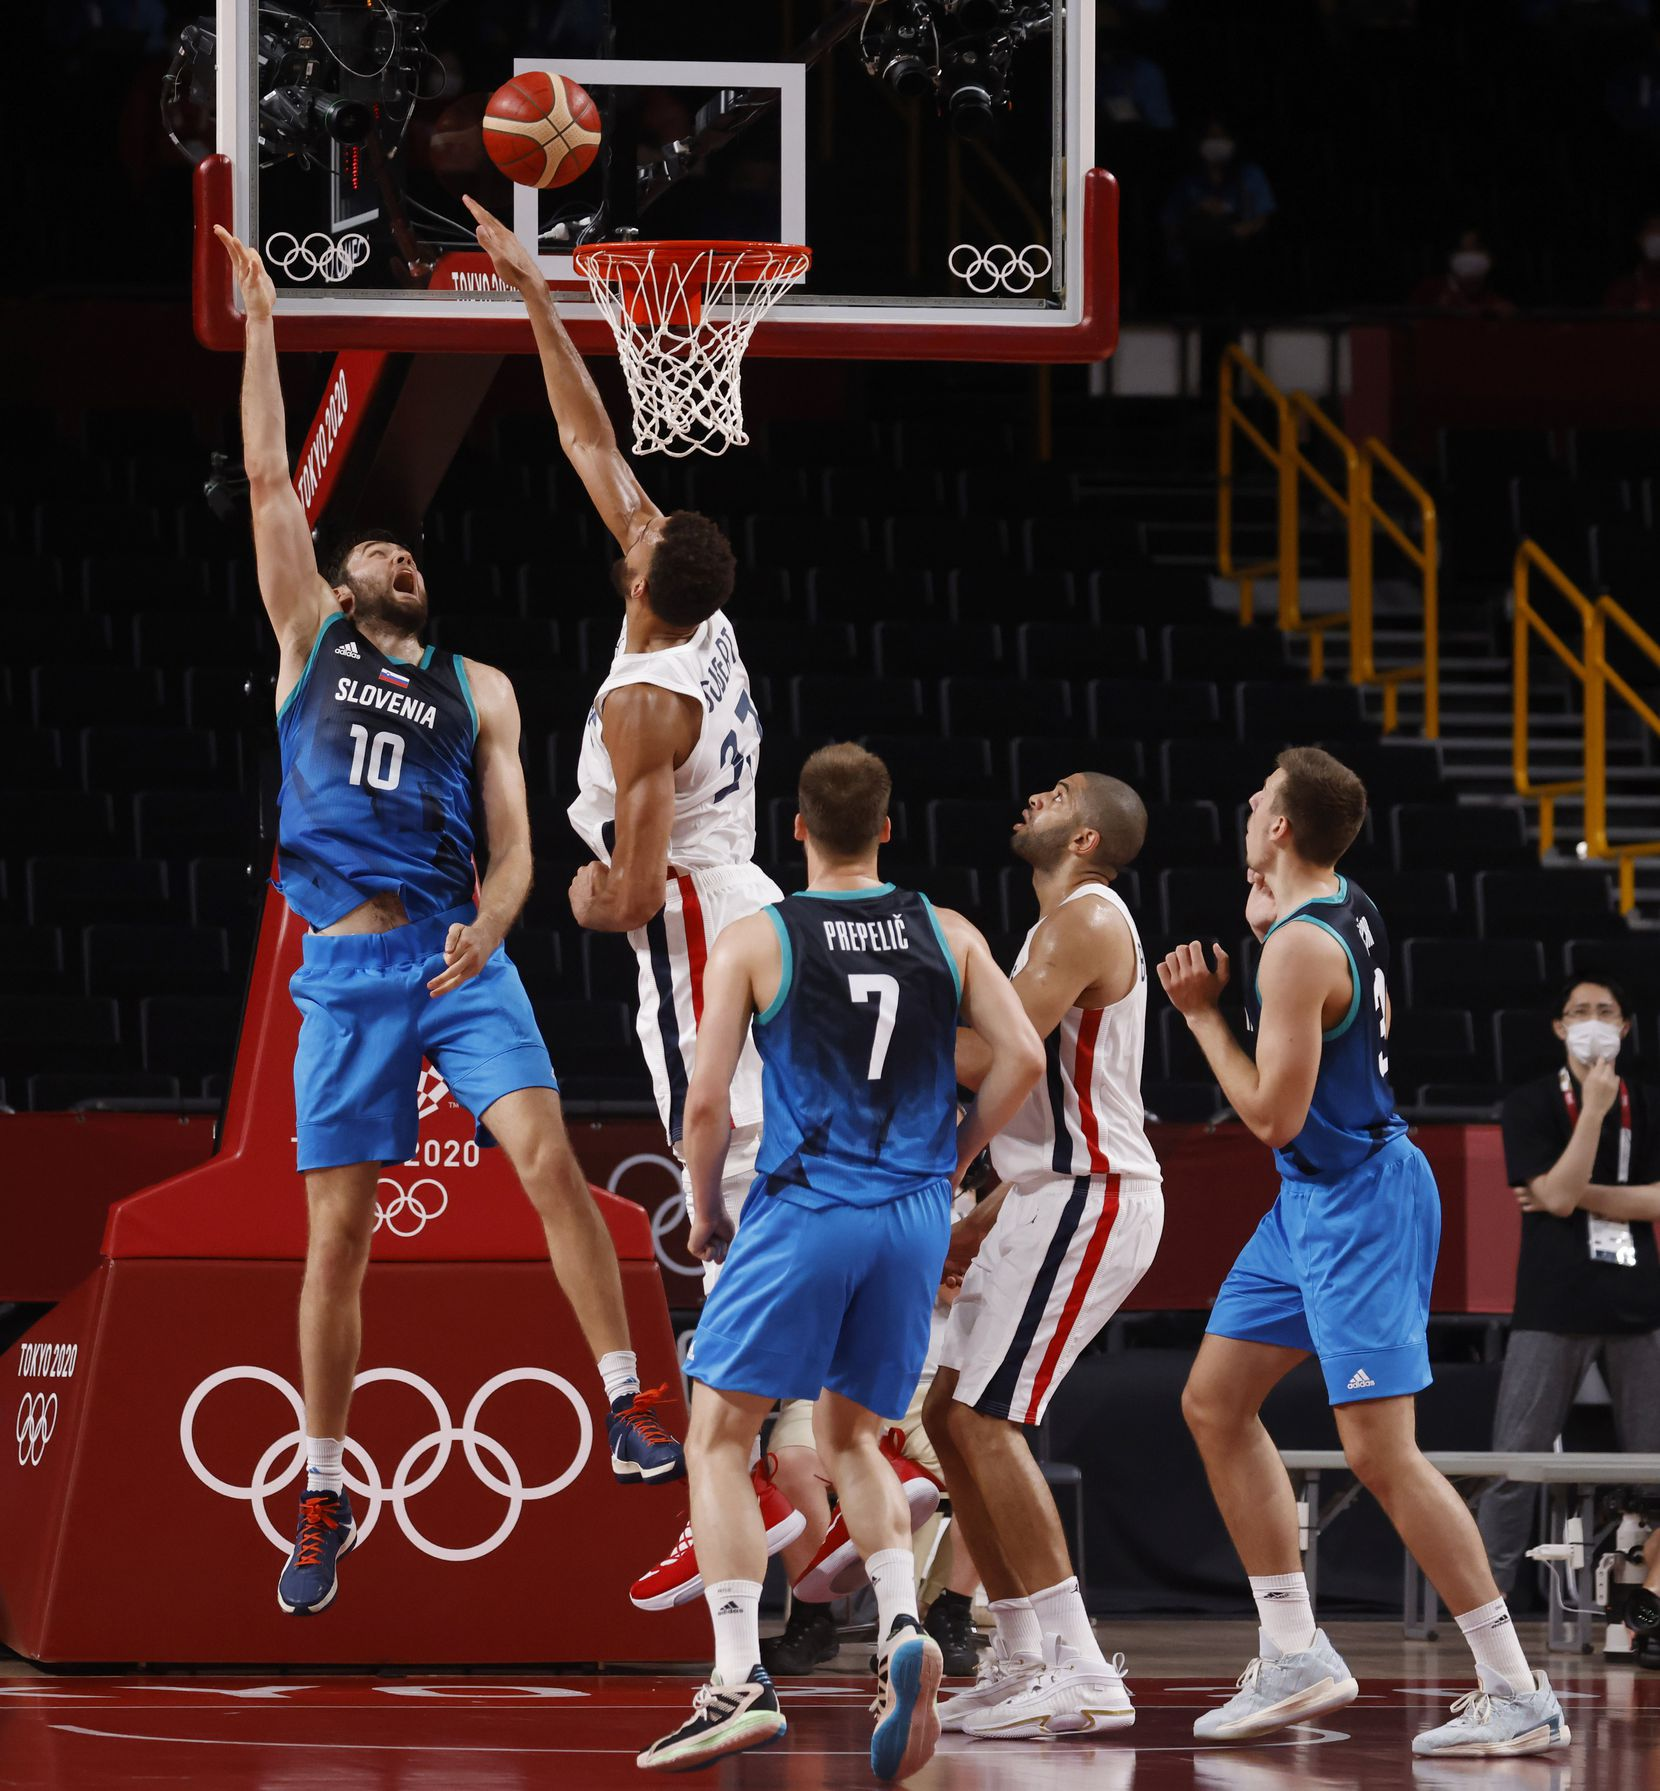 Slovenia's Mike Tobey (10) makes a shot over the arms of France's Rudy Gobert (27) during the second half of a men's basketball semifinal at the postponed 2020 Tokyo Olympics at Saitama Super Arena, on Thursday, August 5, 2021, in Saitama, Japan. France defeated Slovenia 90-89. Slovenia will play in the bronze medal game. (Vernon Bryant/The Dallas Morning News)